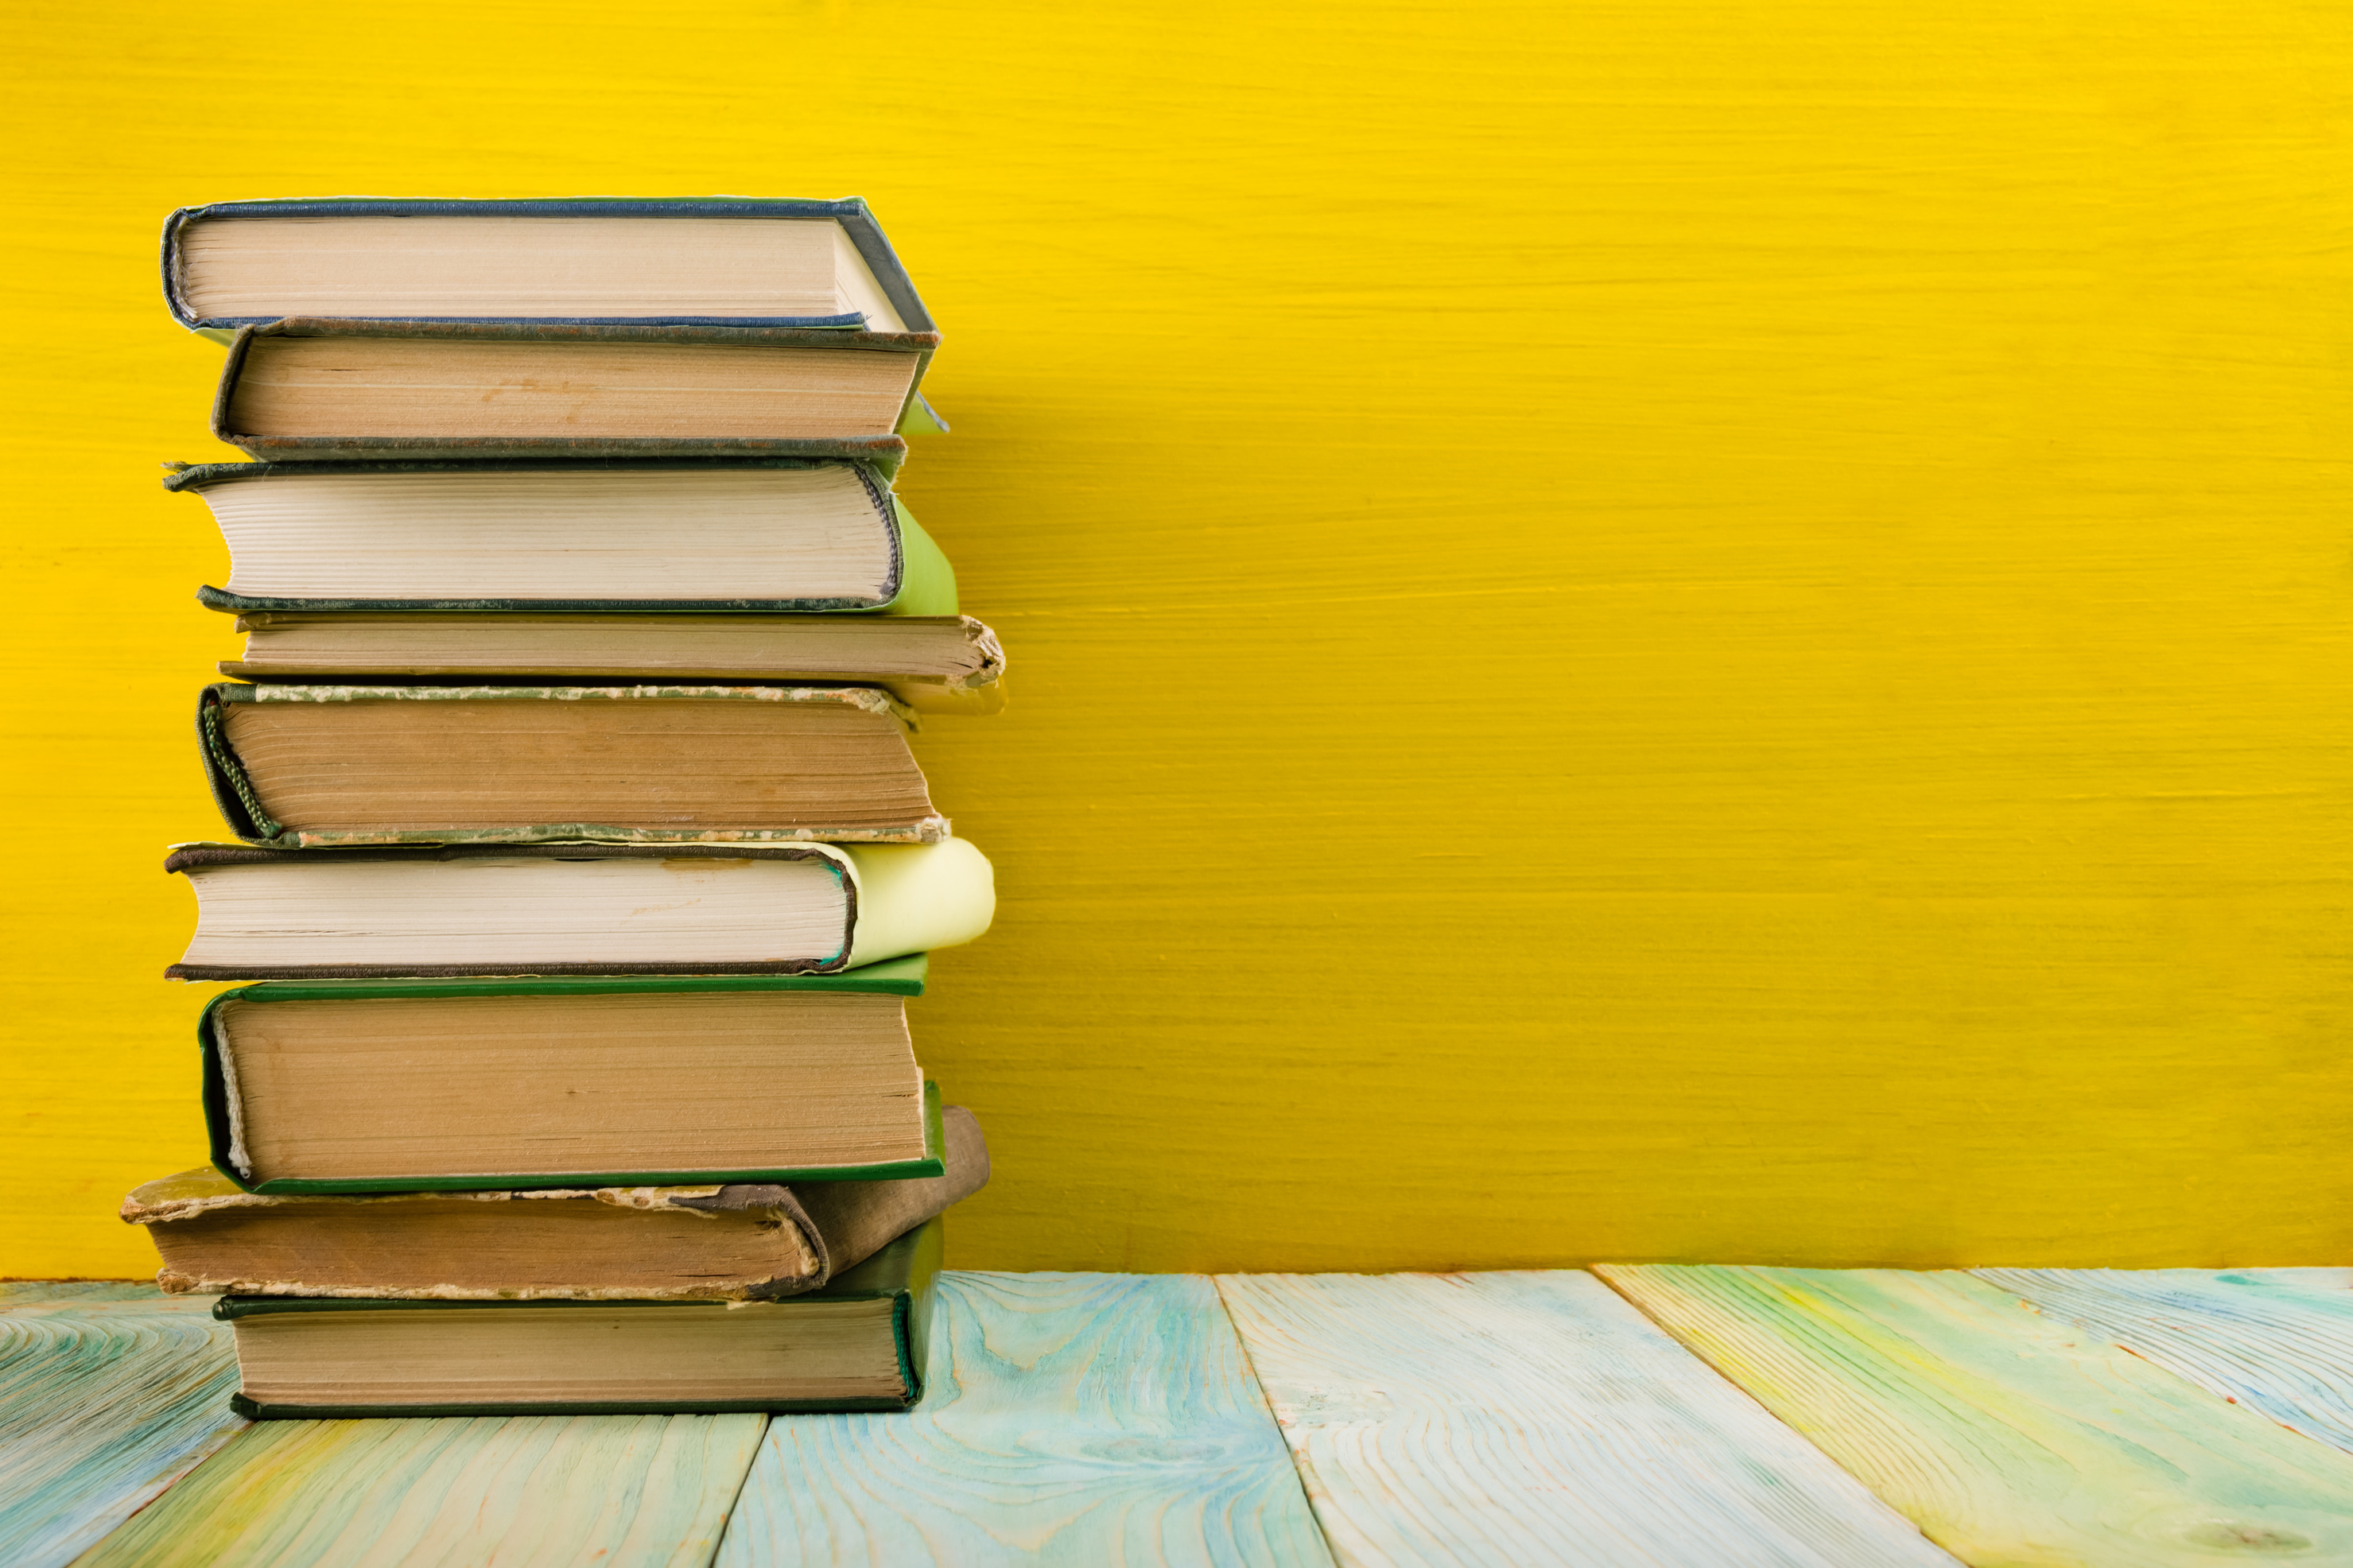 Stack of books, yellow background